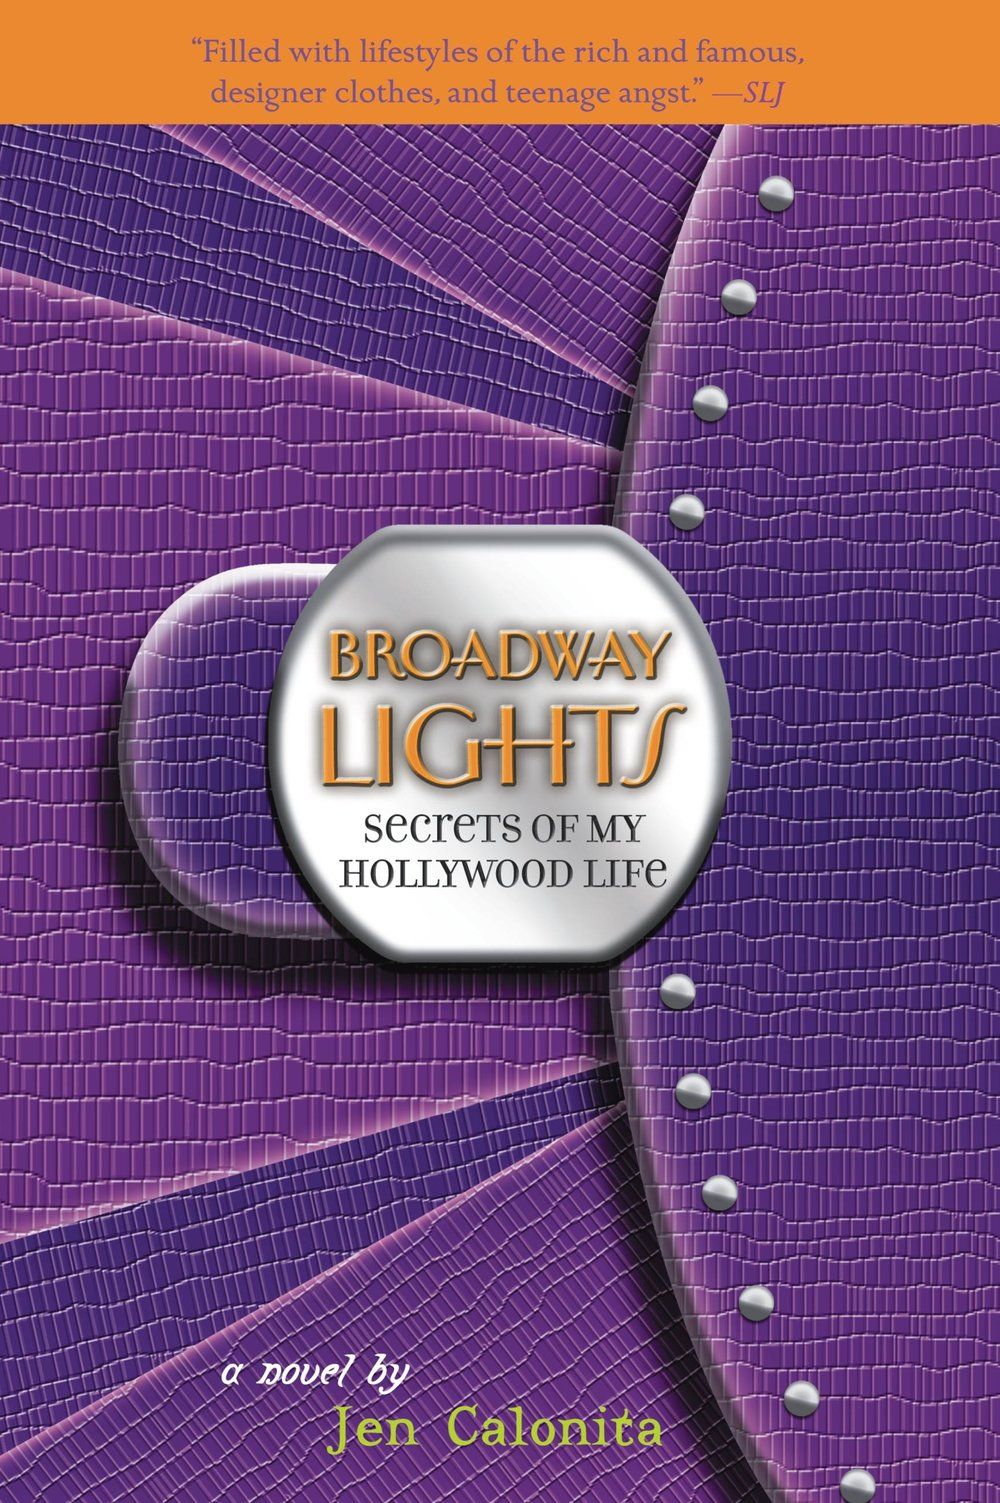 jen-calonita-broadway-lights.jpg